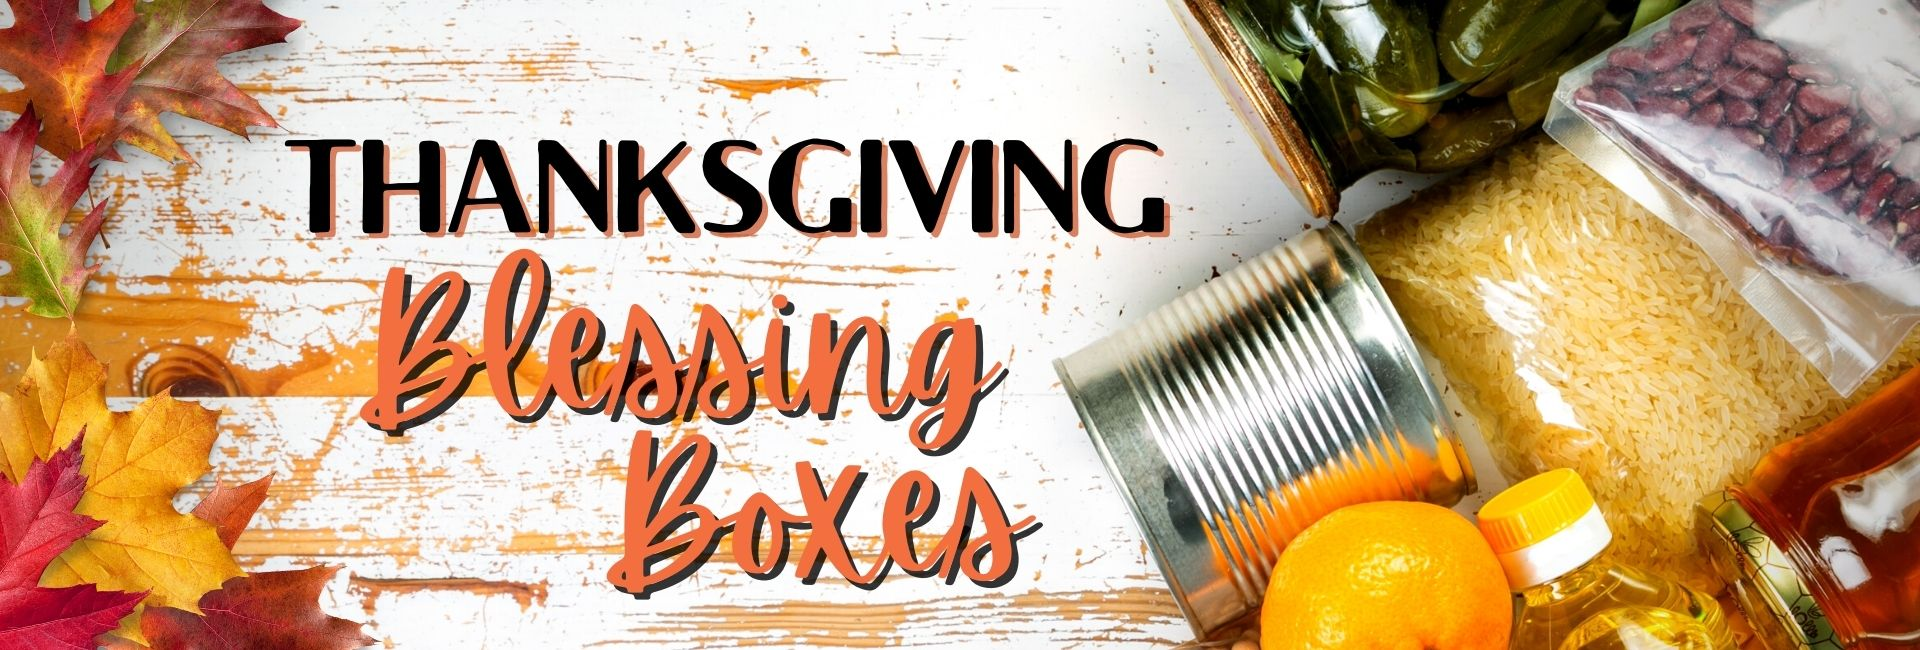 Thanksgiving Blessing Boxes 4 Web 2021